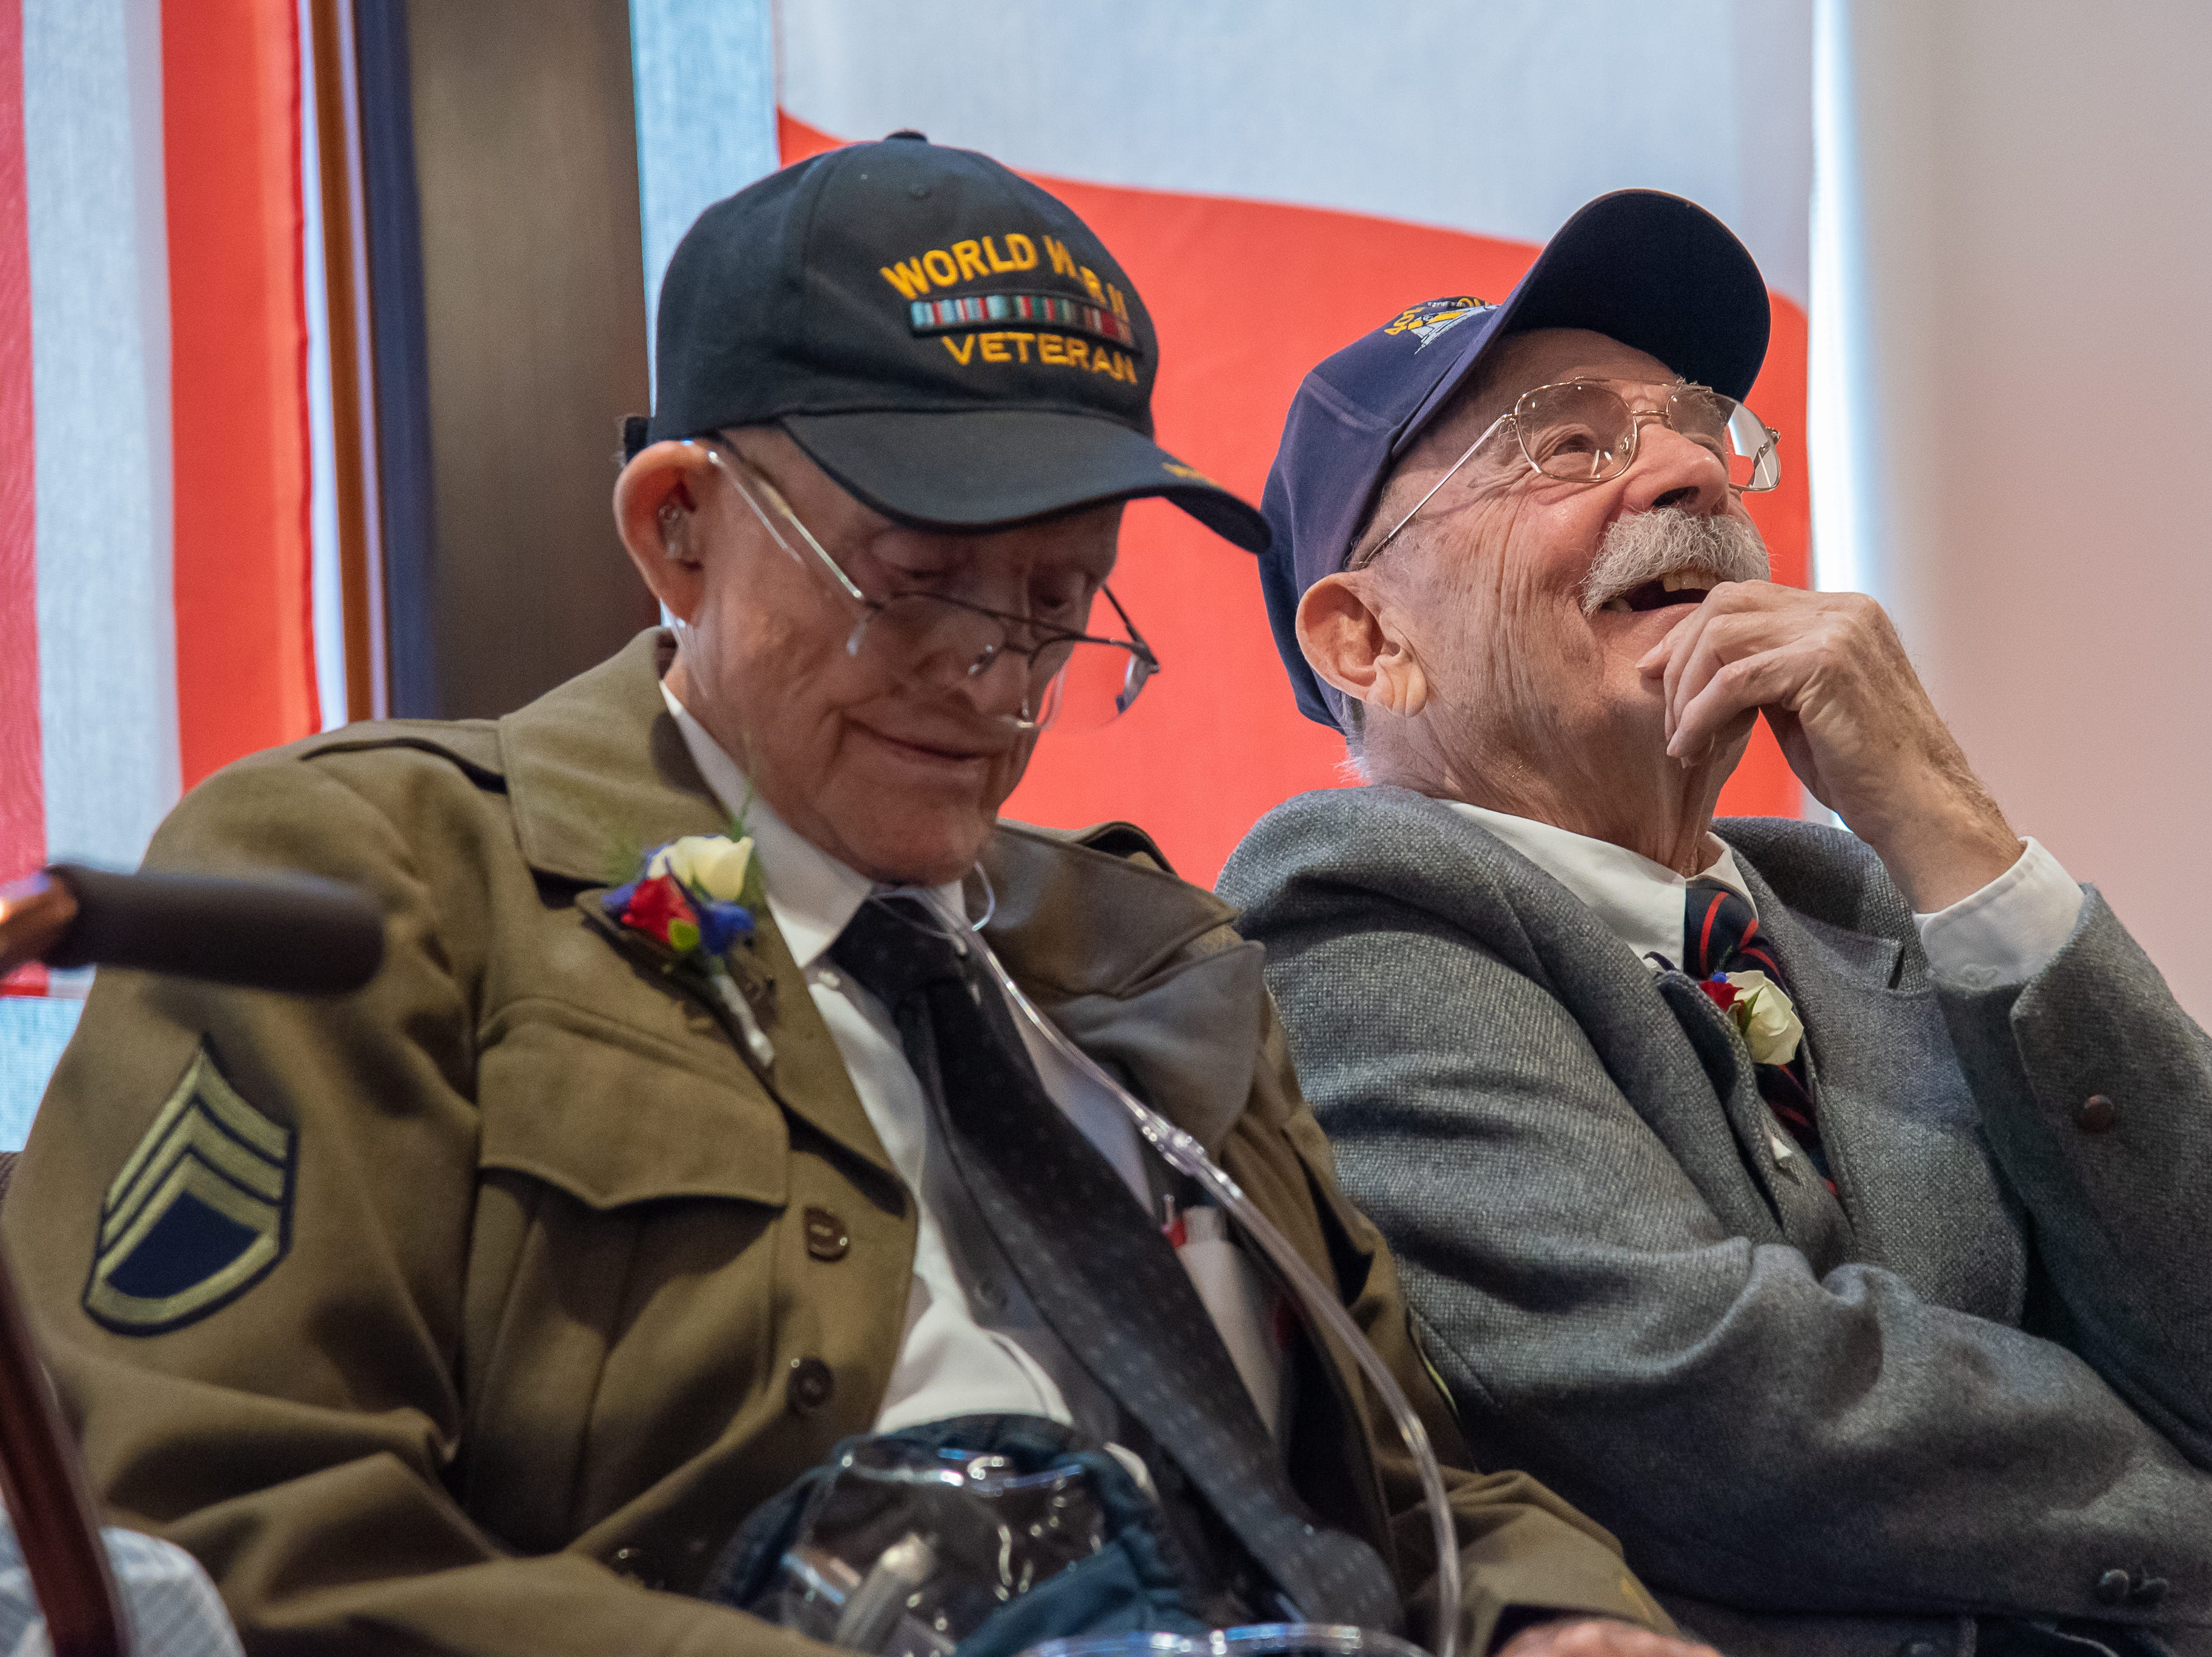 Fort Collins resident and World War II veteran SSG Harry Maroncelli chuckles as he listens to Ltc. Frank Huffman introduce him to the crowd at a the French Legion of Honor Medal ceremony at the Good Samaritan Water Valley Resort in Windsor on Monday, February 4, 2019.